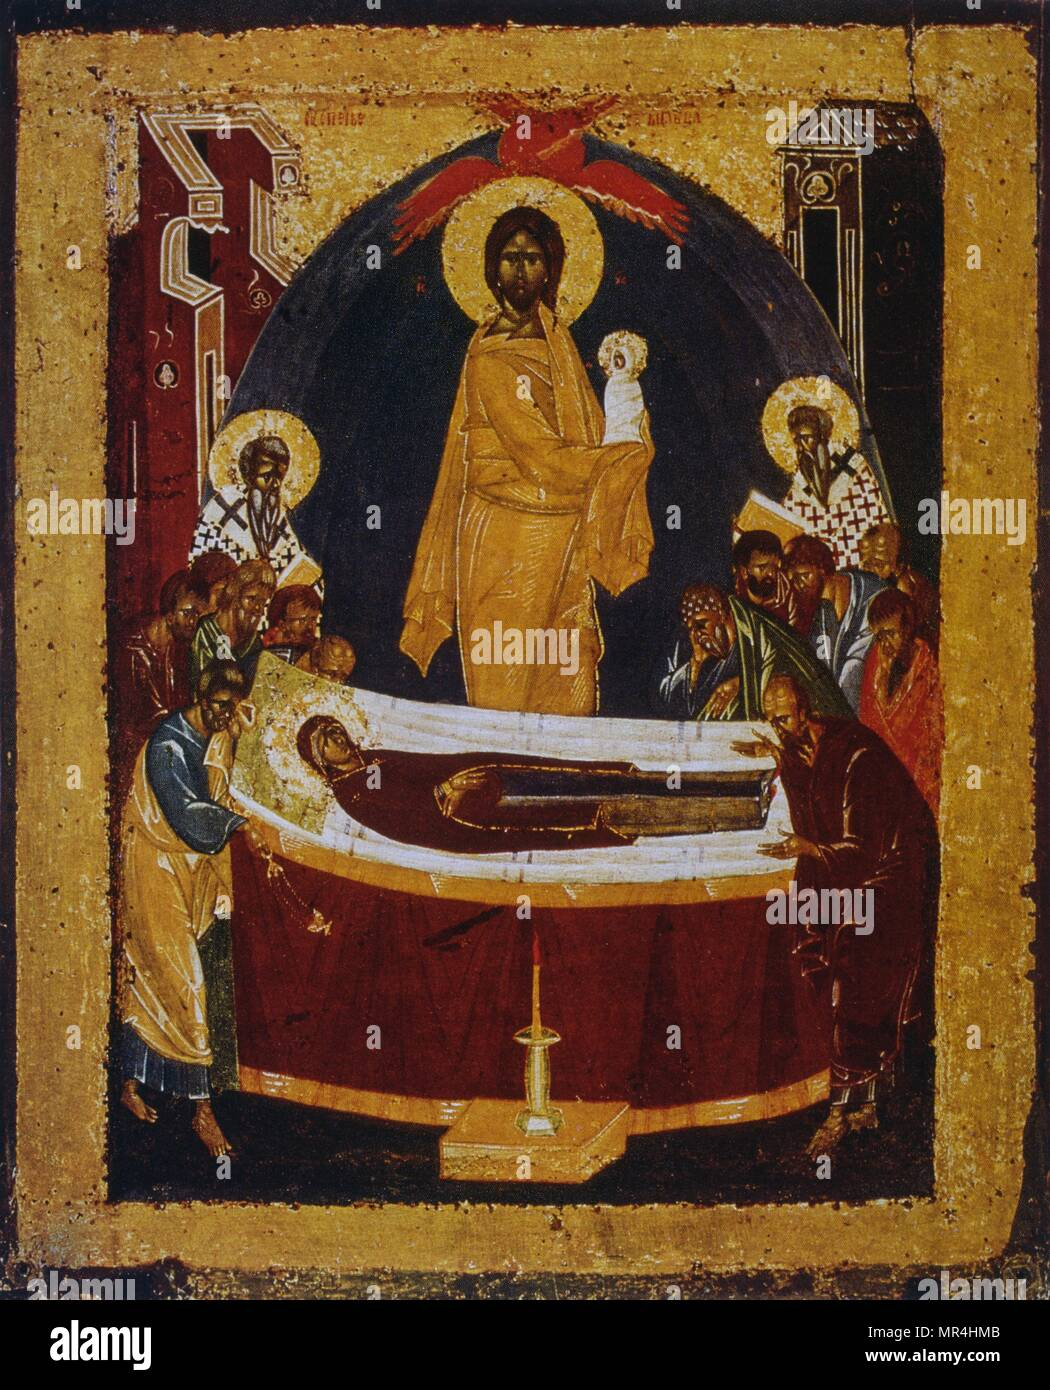 14th century Russian orthodox icon showing the death of the Virgin Mary. Jesus looks on as the Virgin is laid on her deathbed. Stock Photo